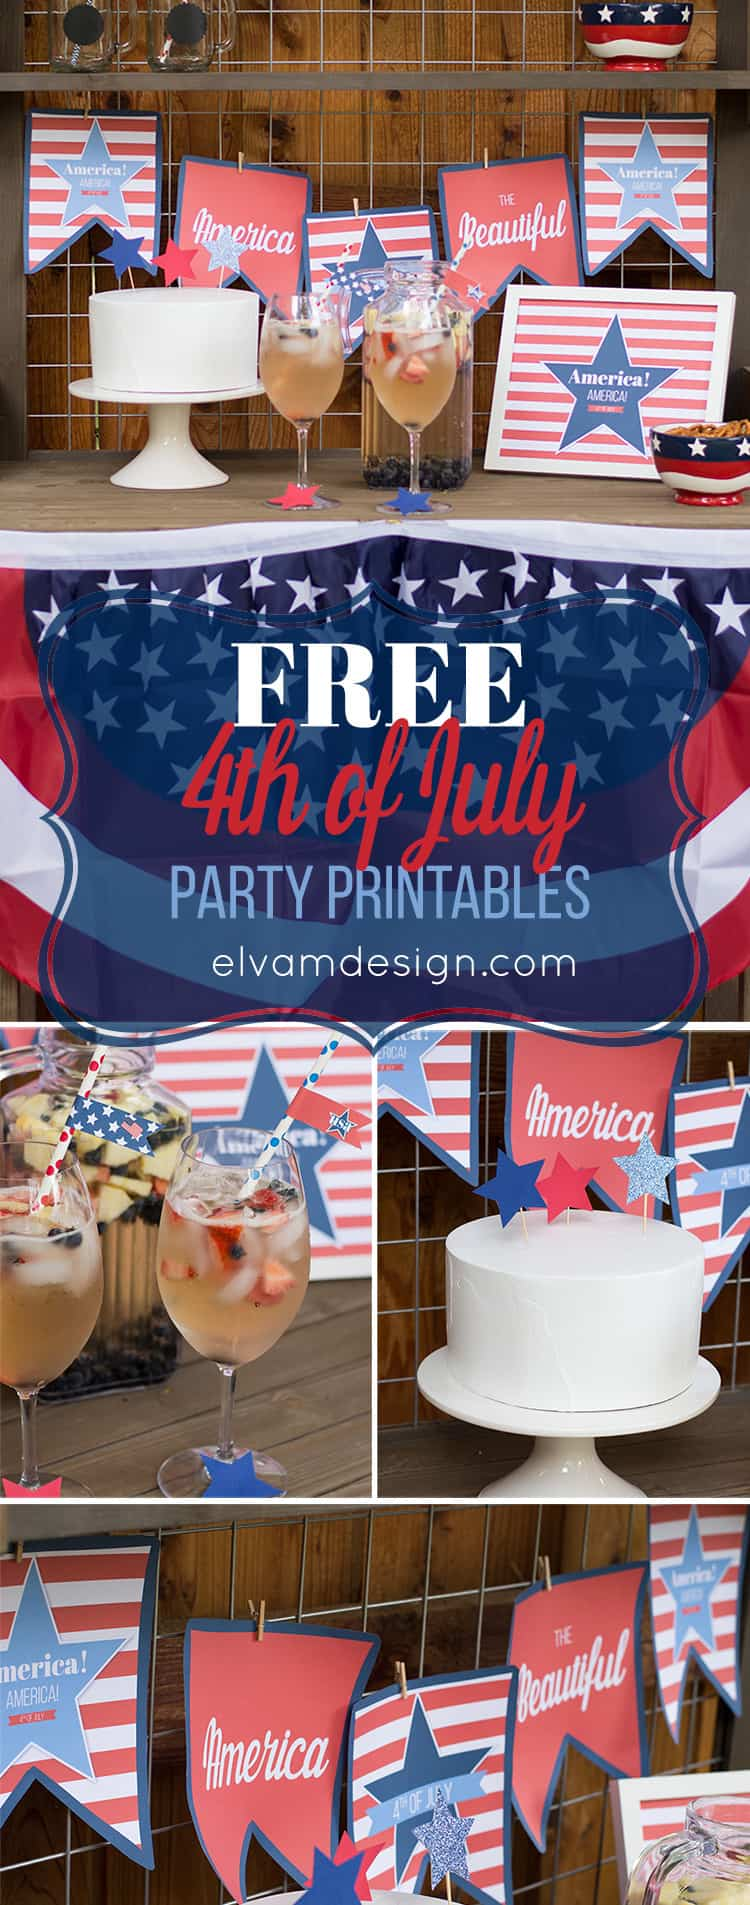 Free Printable 4th of July Decor from Elva M Design Studio